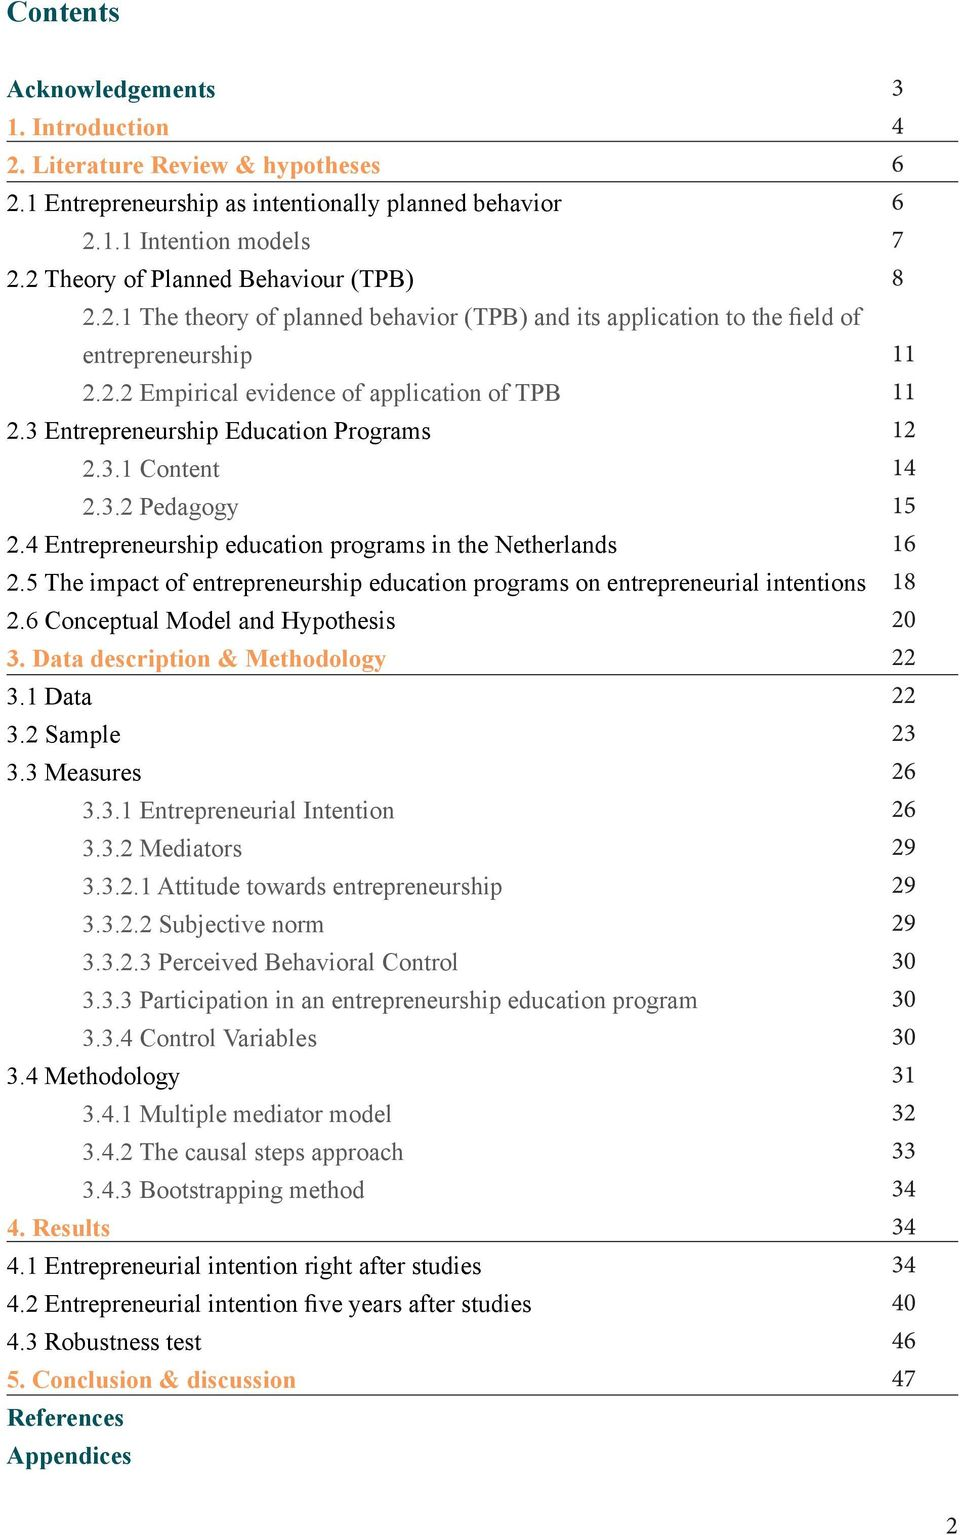 5 The impact of entrepreneurship education programs on entrepreneurial intentions 2.6 Conceptual Model and Hypothesis 3. Data description & Methodology 3.1 Data 3.2 Sample 3.3 Measures 3.3.1 Entrepreneurial Intention 3.